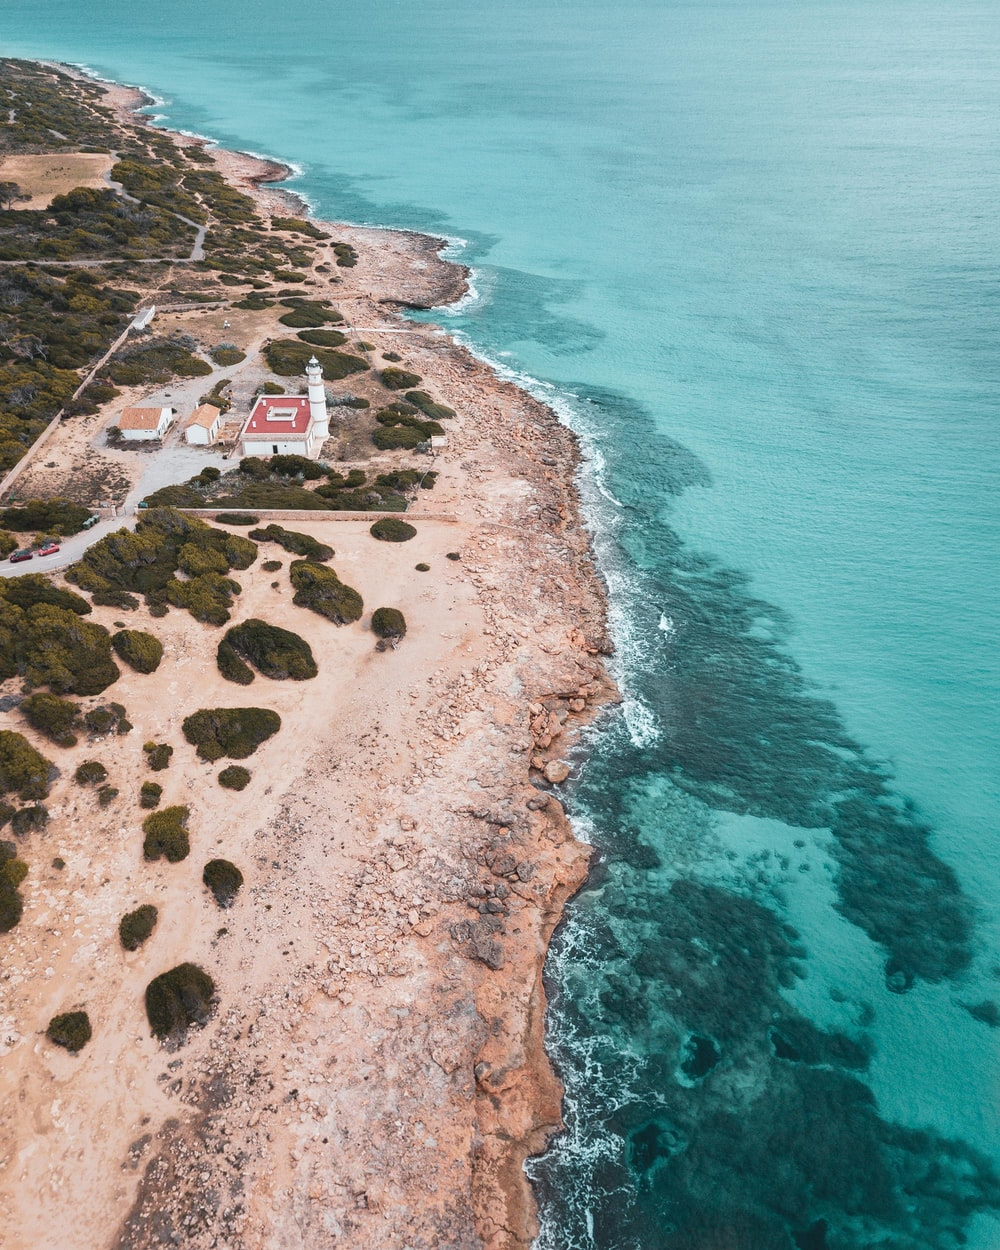 aerial photo of light house near body of water during daytime